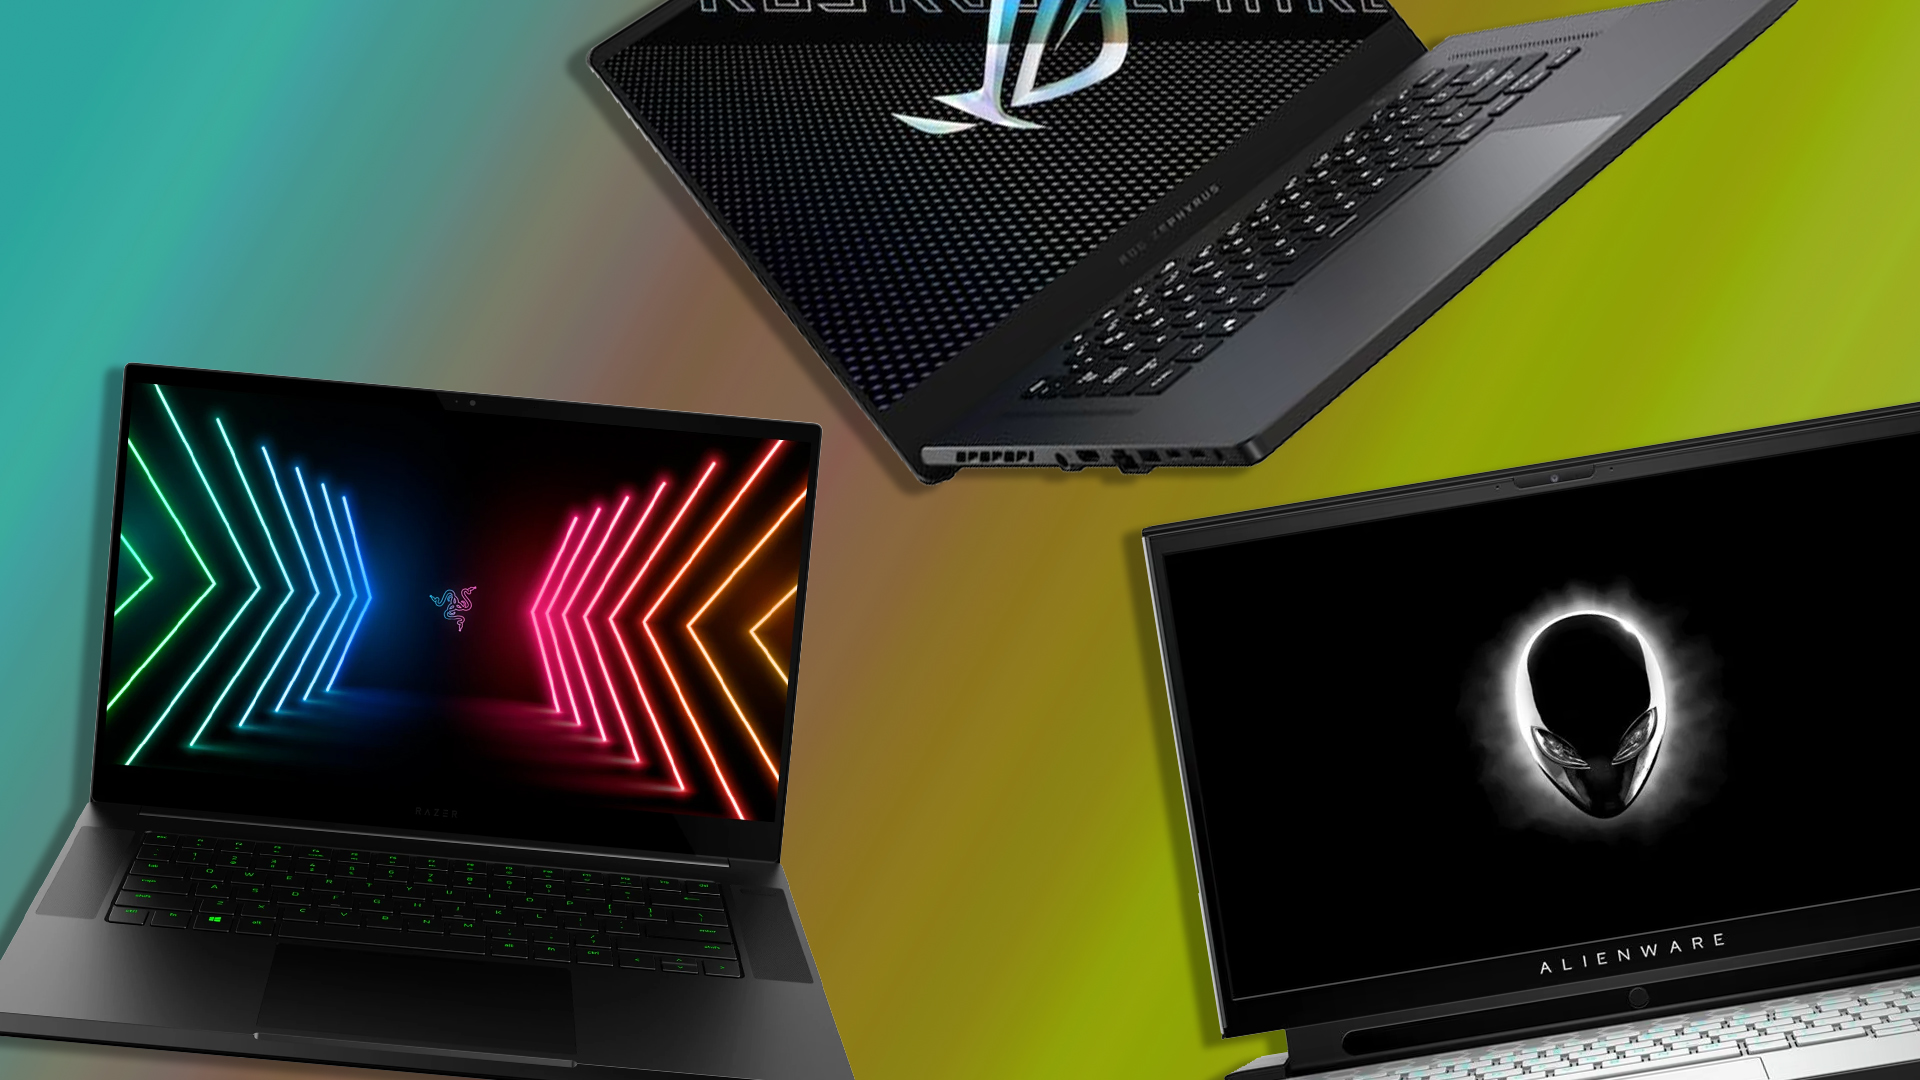 RTX 3080 Laptops: All the Models You Can Buy Right Now